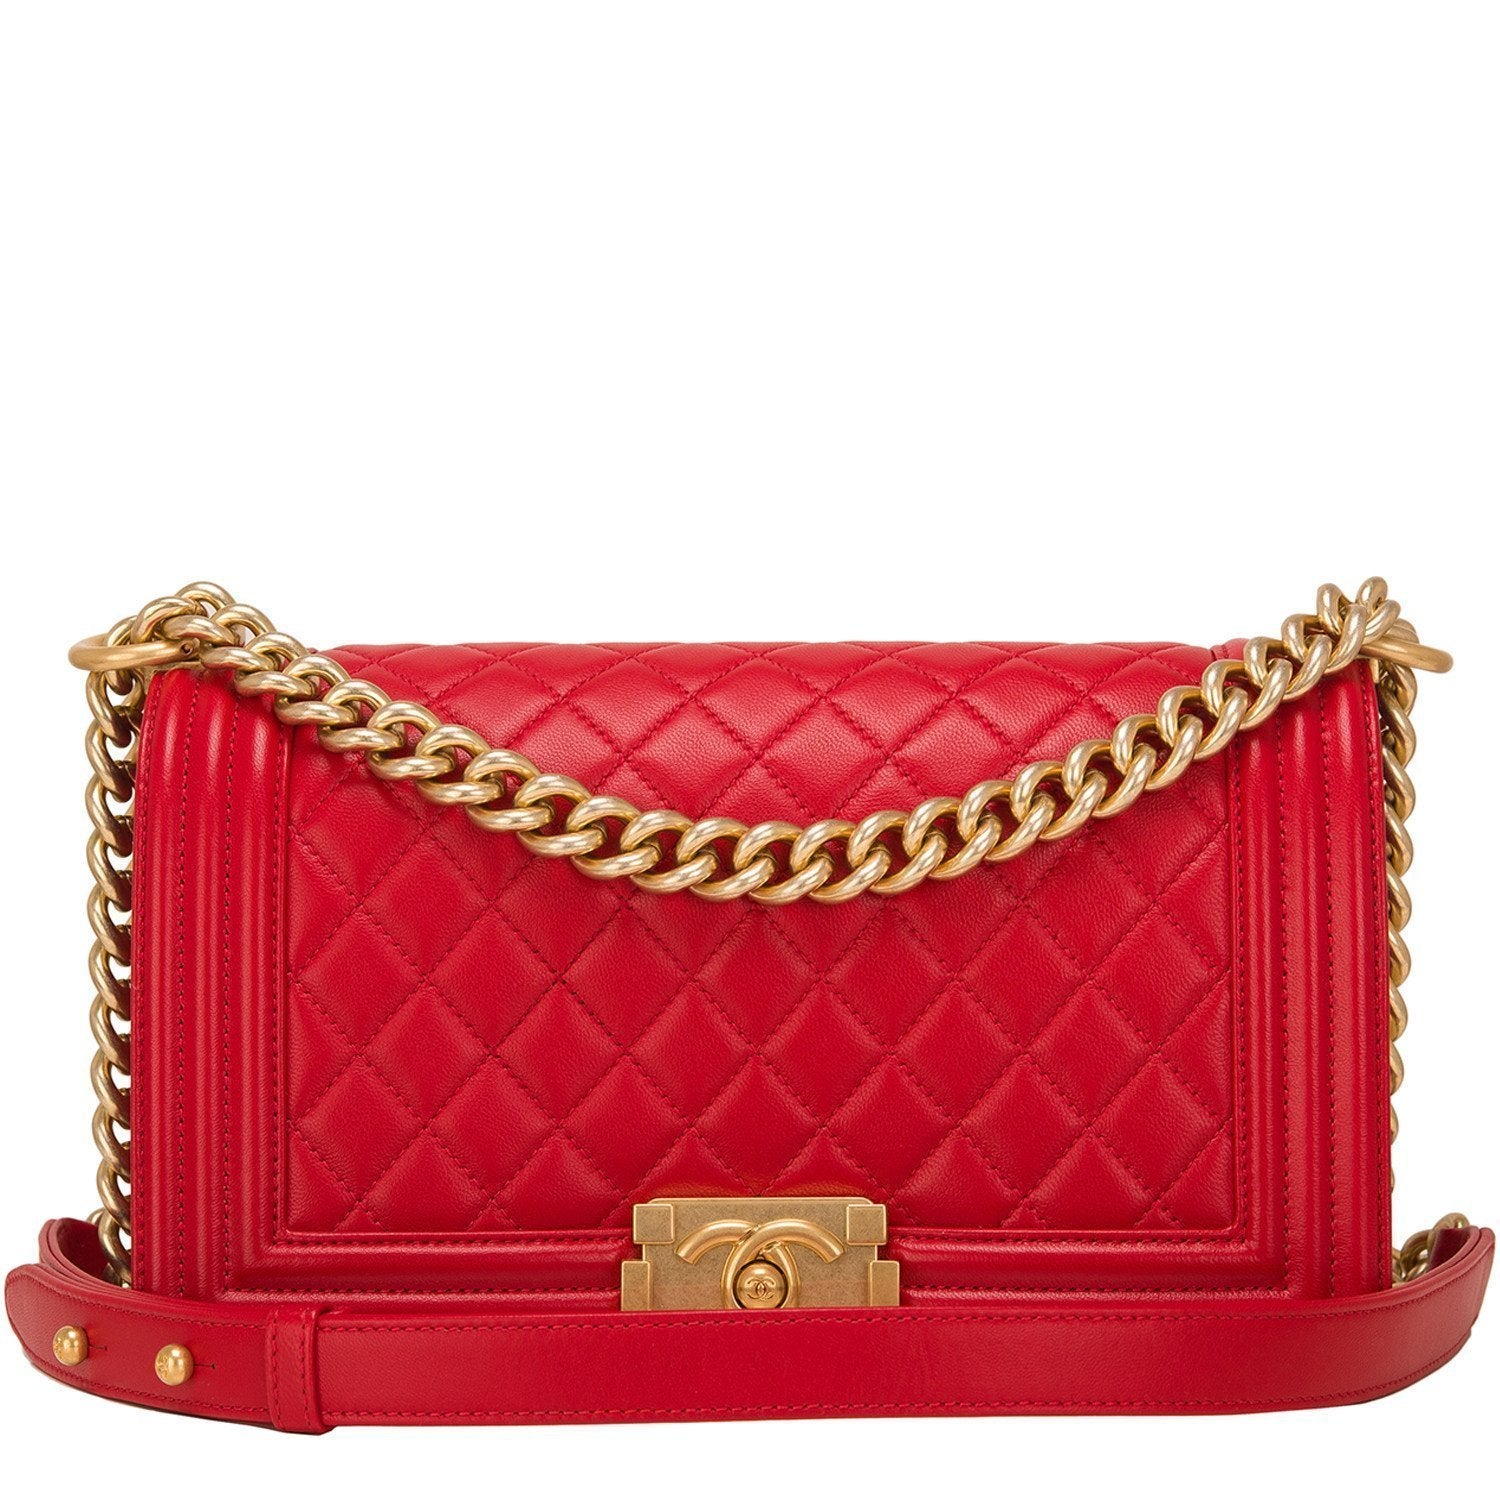 Chanel Red Quilted Lambskin Medium Boy Bag Handbags